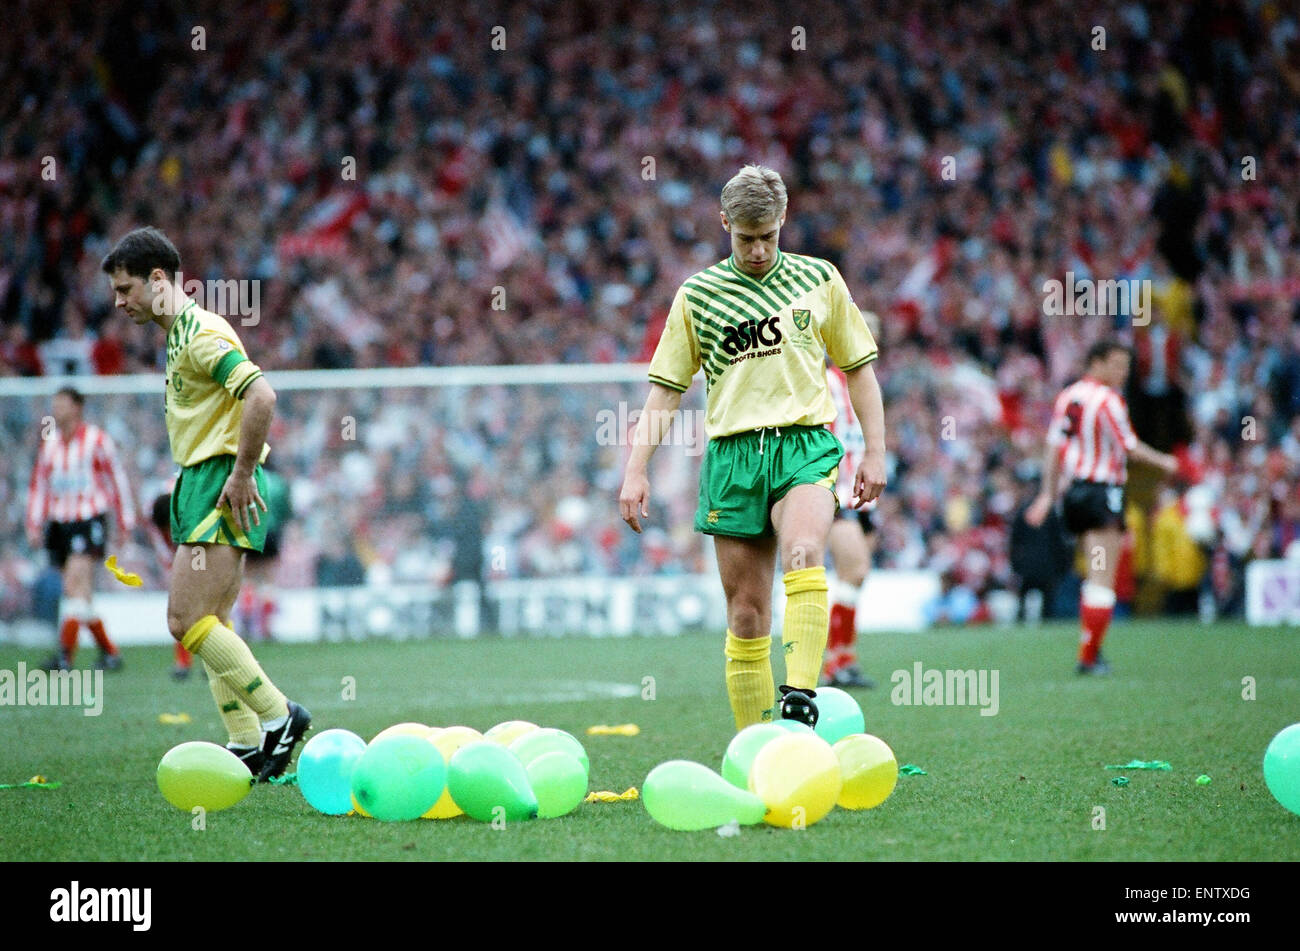 Sunderland 1-0 Norwich 1992 FA Cup semi-final 5/4/1992 - Stock Image